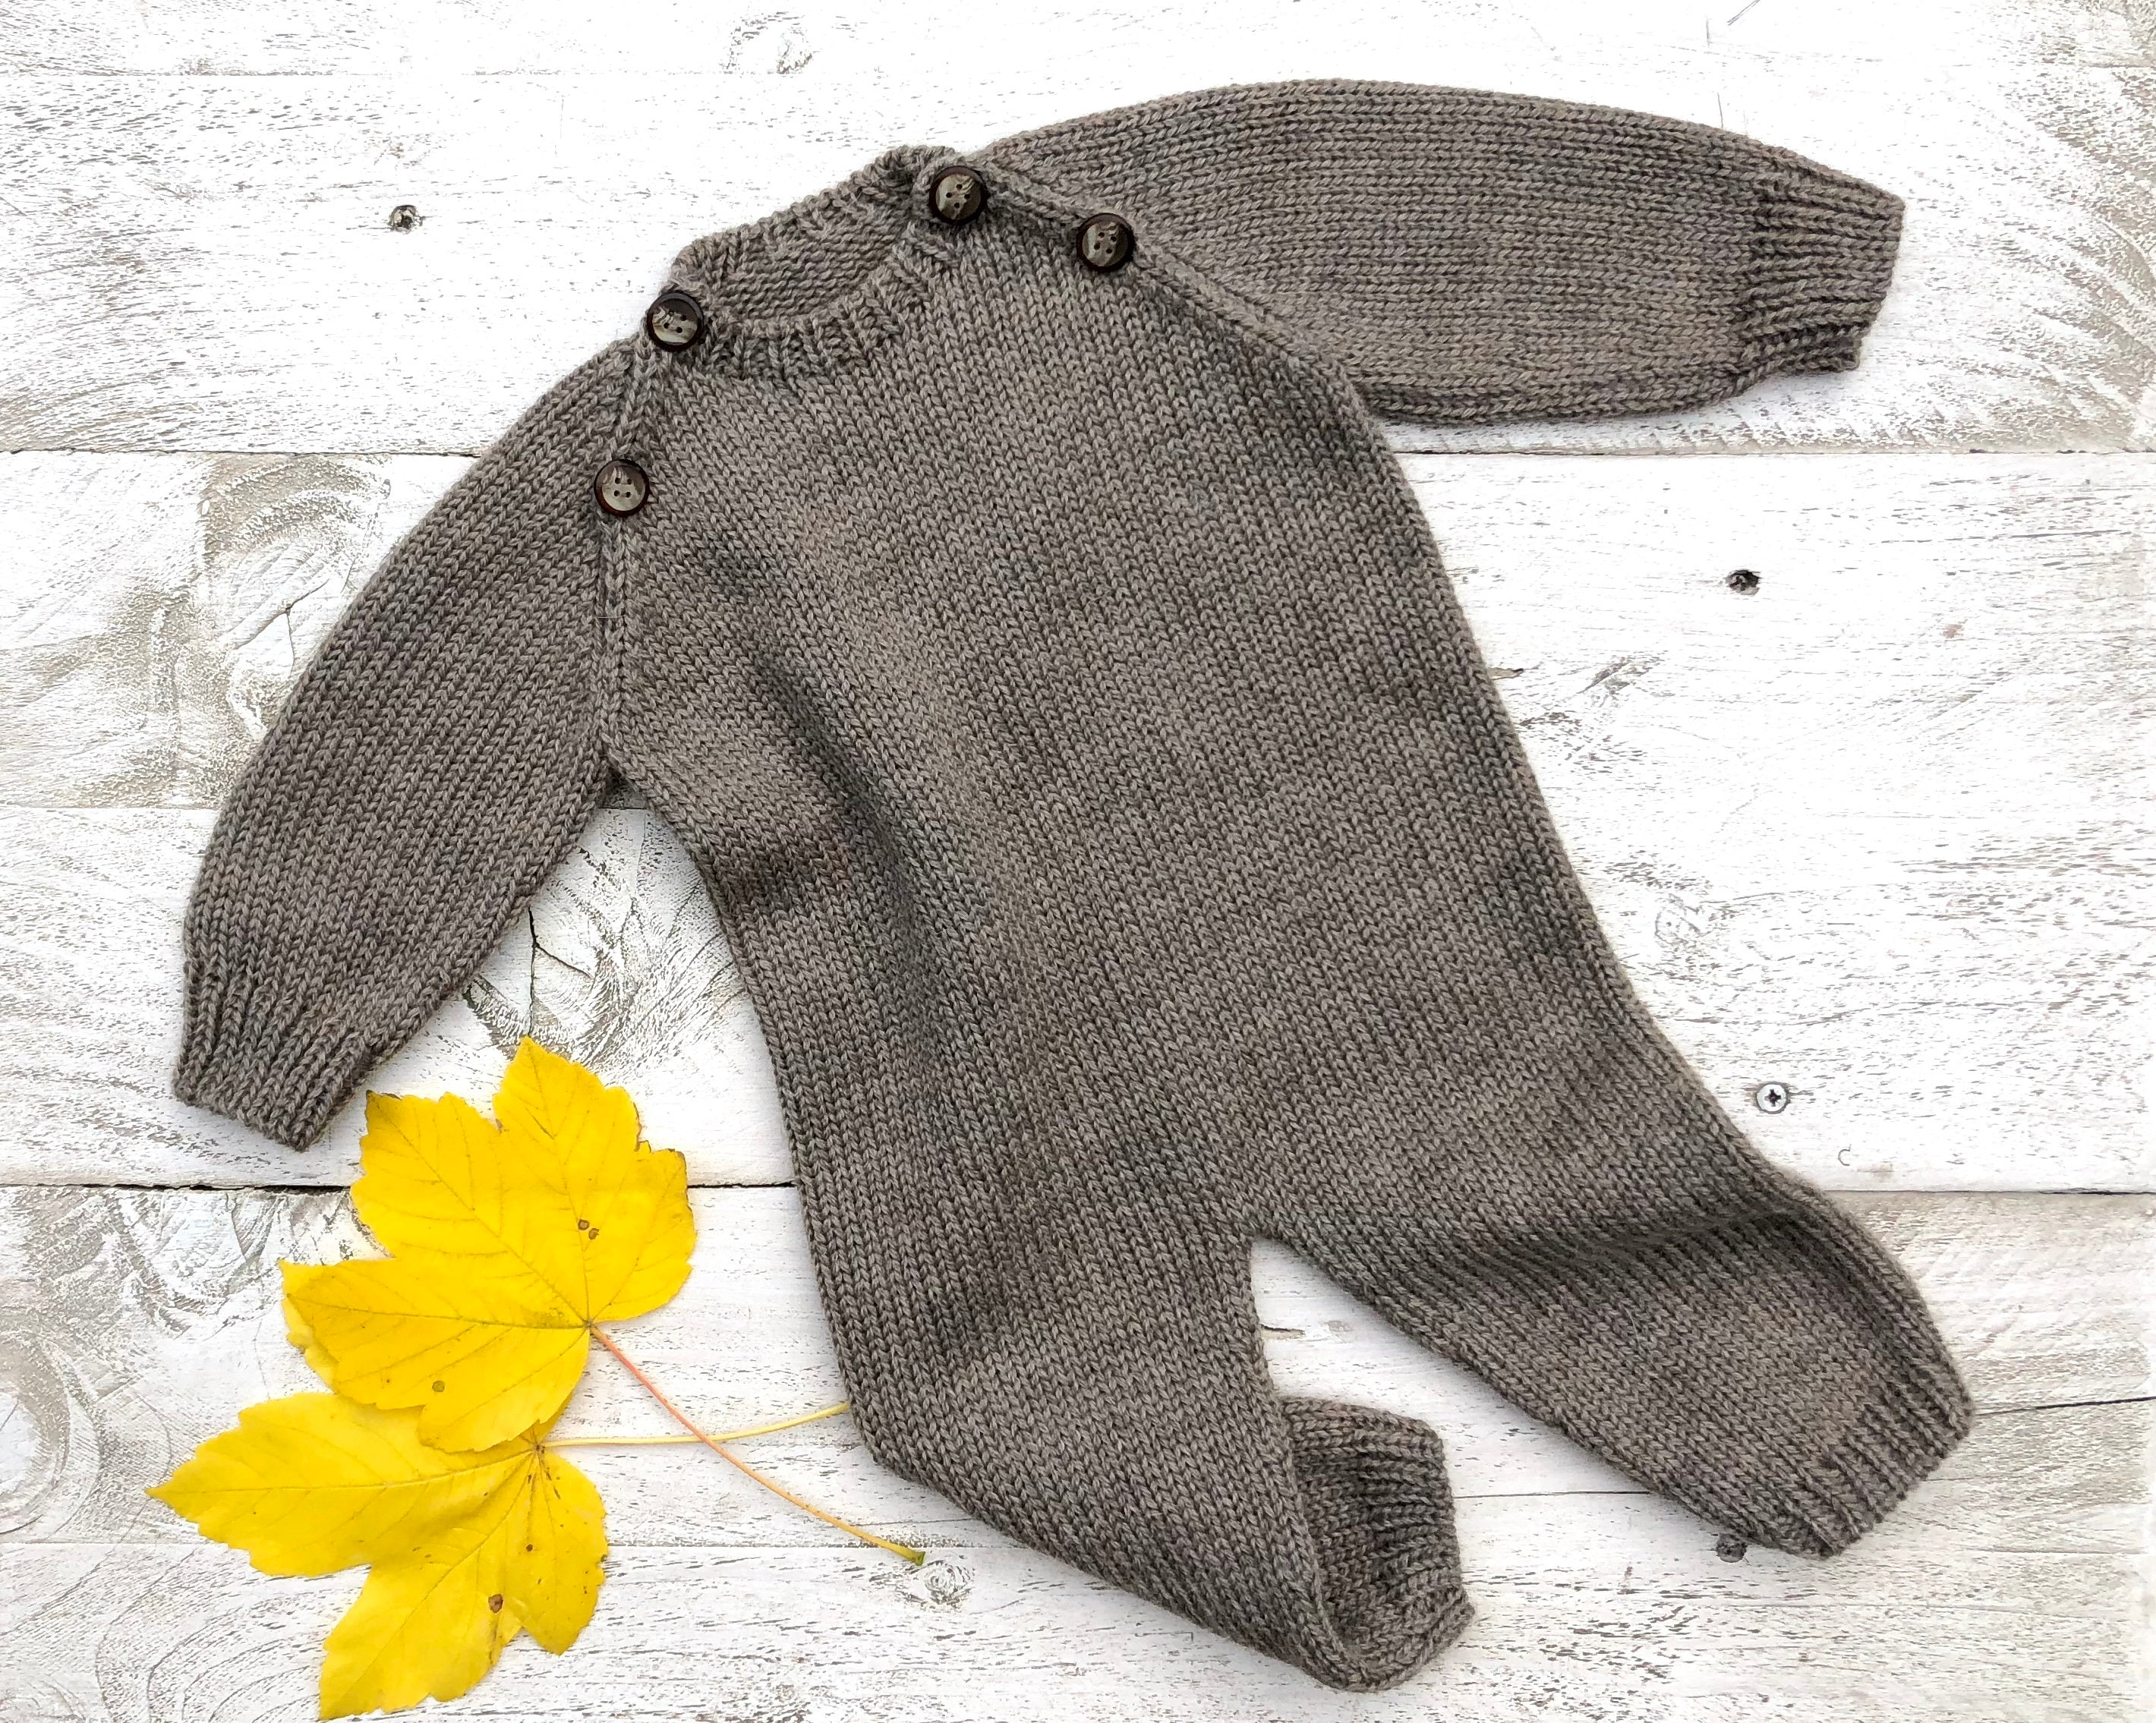 Handmade Merino Knitted Baby Set,Knit Baby Jumpsuit,Knit Baby Hat,Knit Baby Clothes,knit newborn Outfit,Baby Coming Home,Kids Clothes Knit